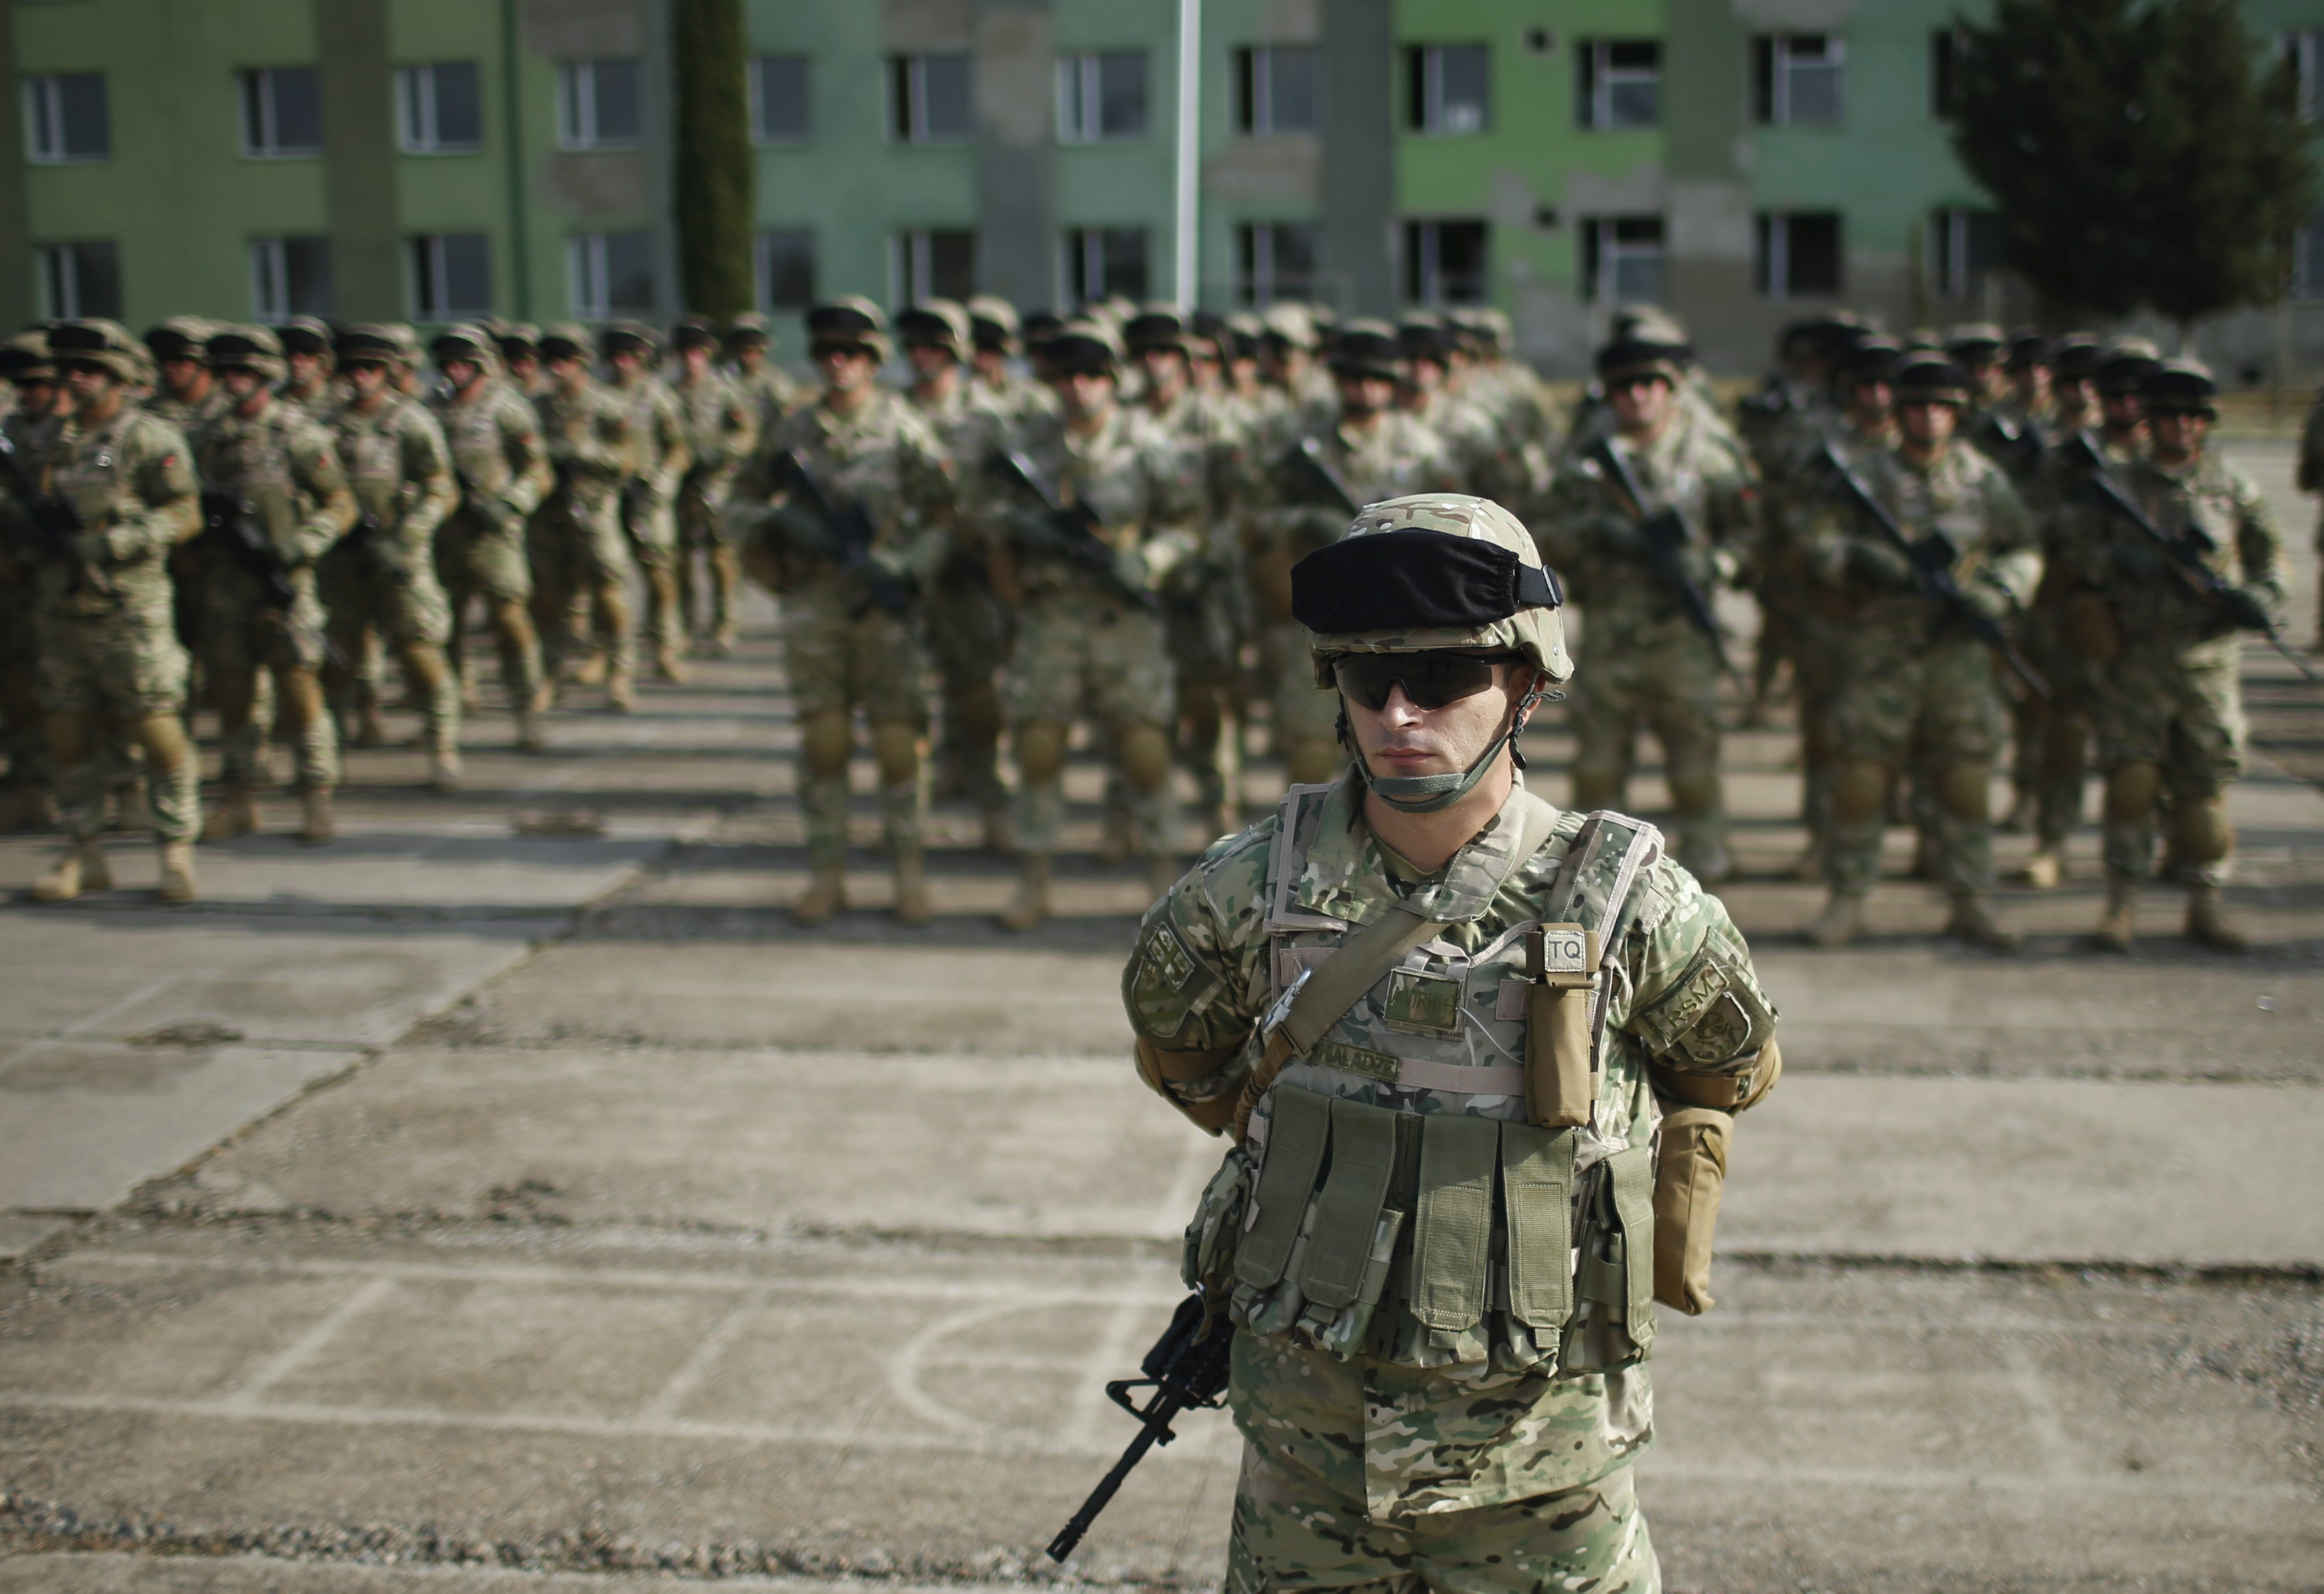 Servicemen attend a farewell ceremony at the Vaziani military base outside Tbilisi, Georgia, September 30, 2015. Photo: Reuters